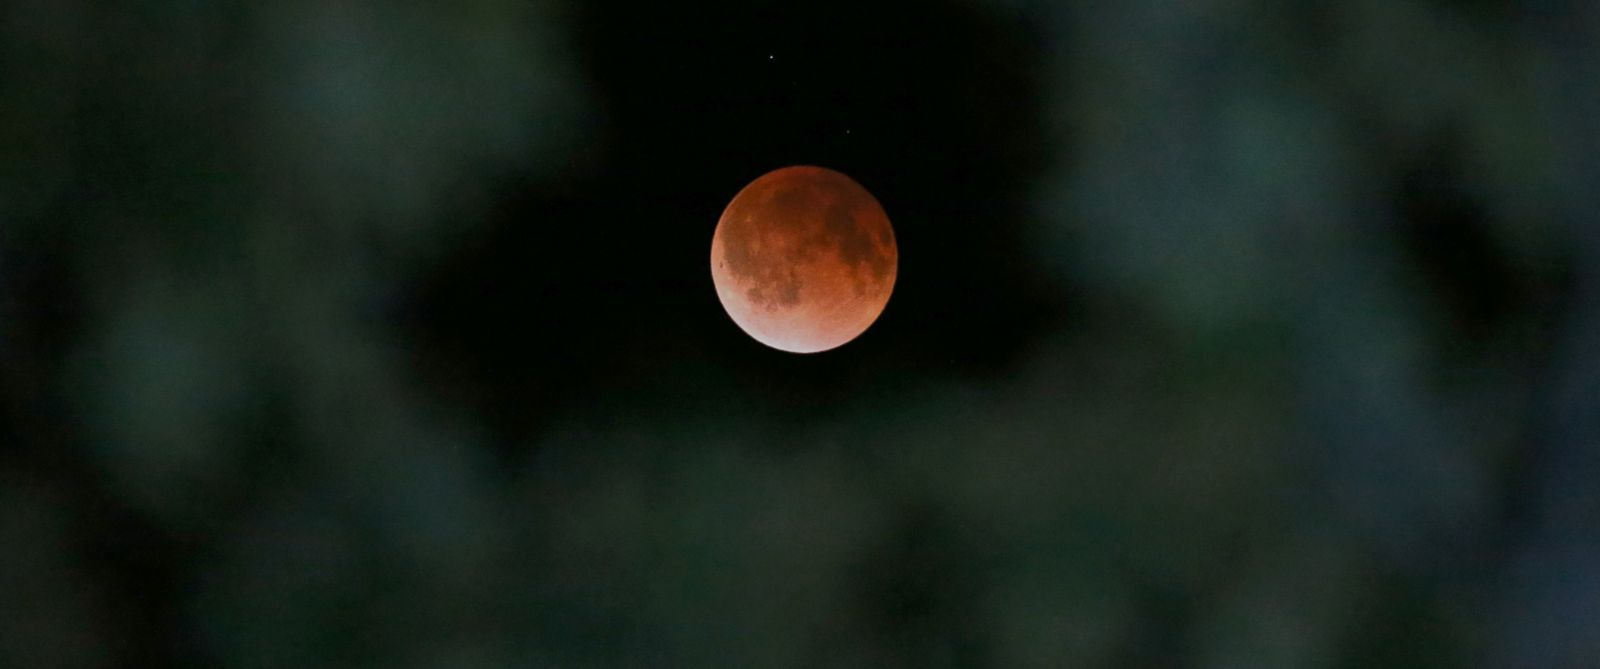 blood moon today in texas - photo #48